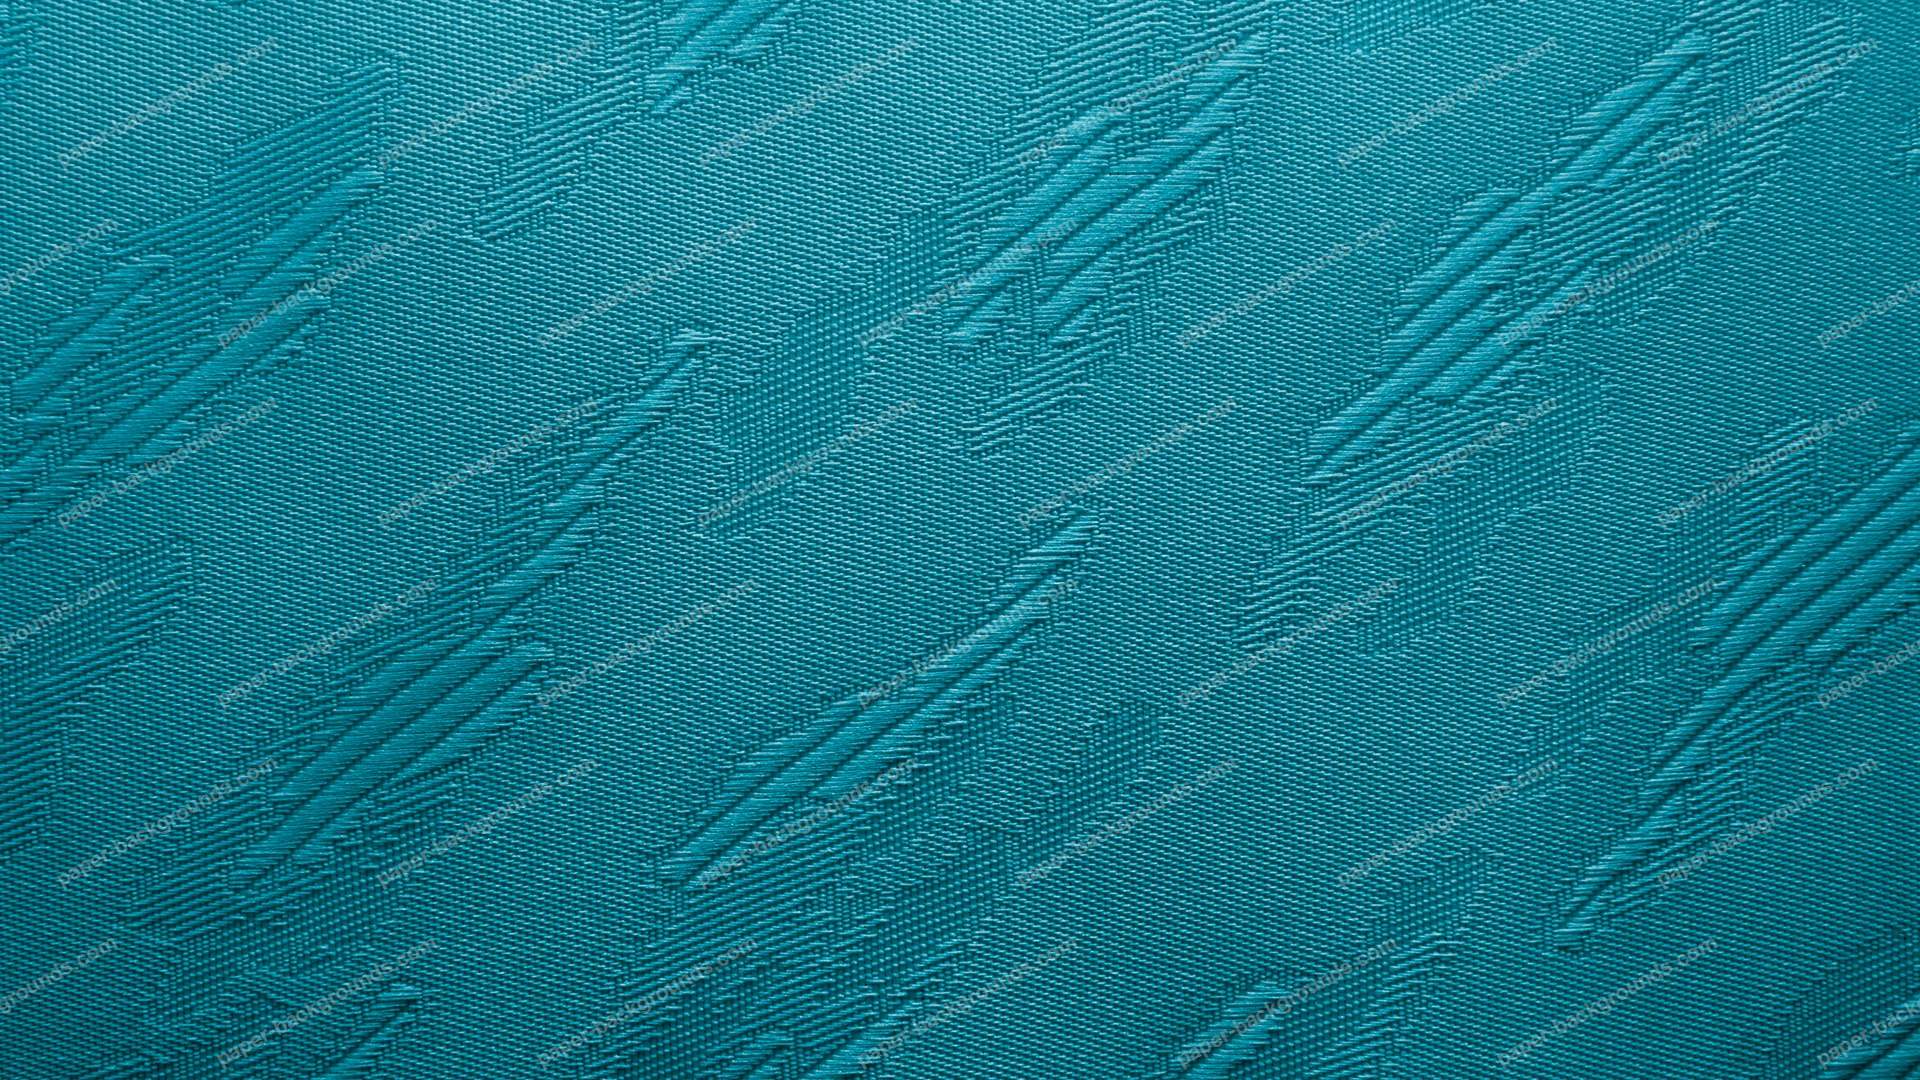 Vintage Blue Canvas Texture HD 1920 x 1080p